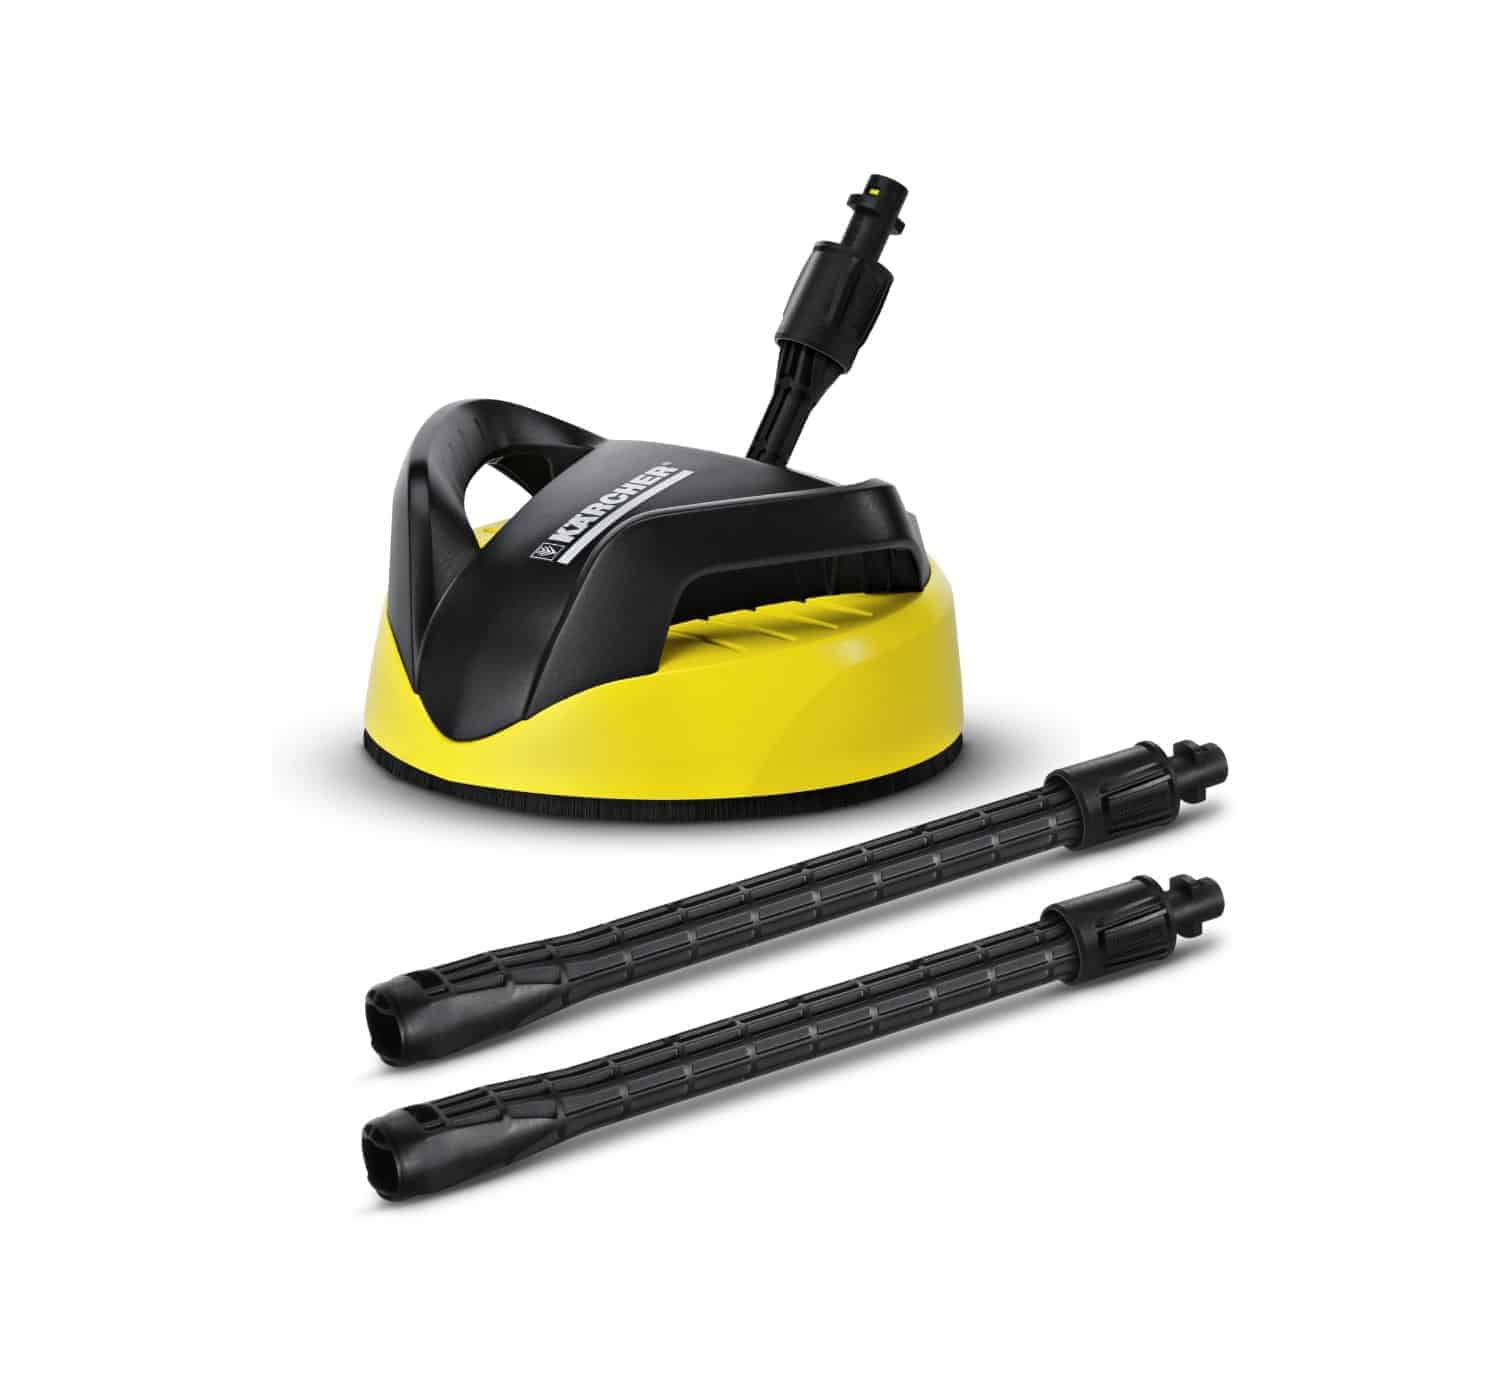 Karcher t250 deck and driveway surface cleaner review for Driveway pressure washer